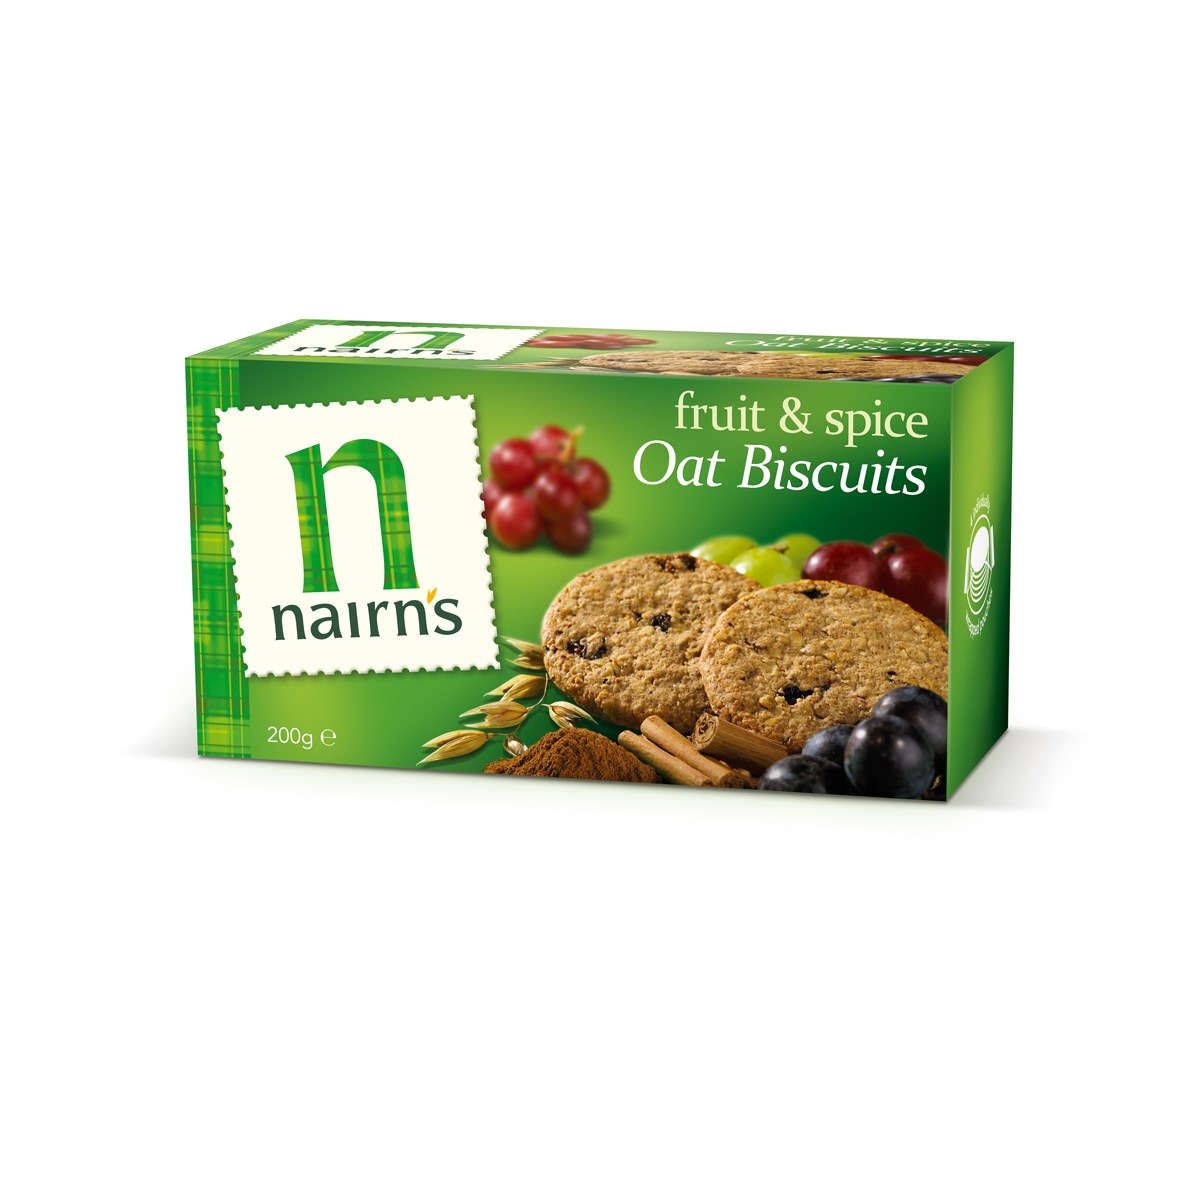 Nairn's Oat Biscuits Fruit & Spice